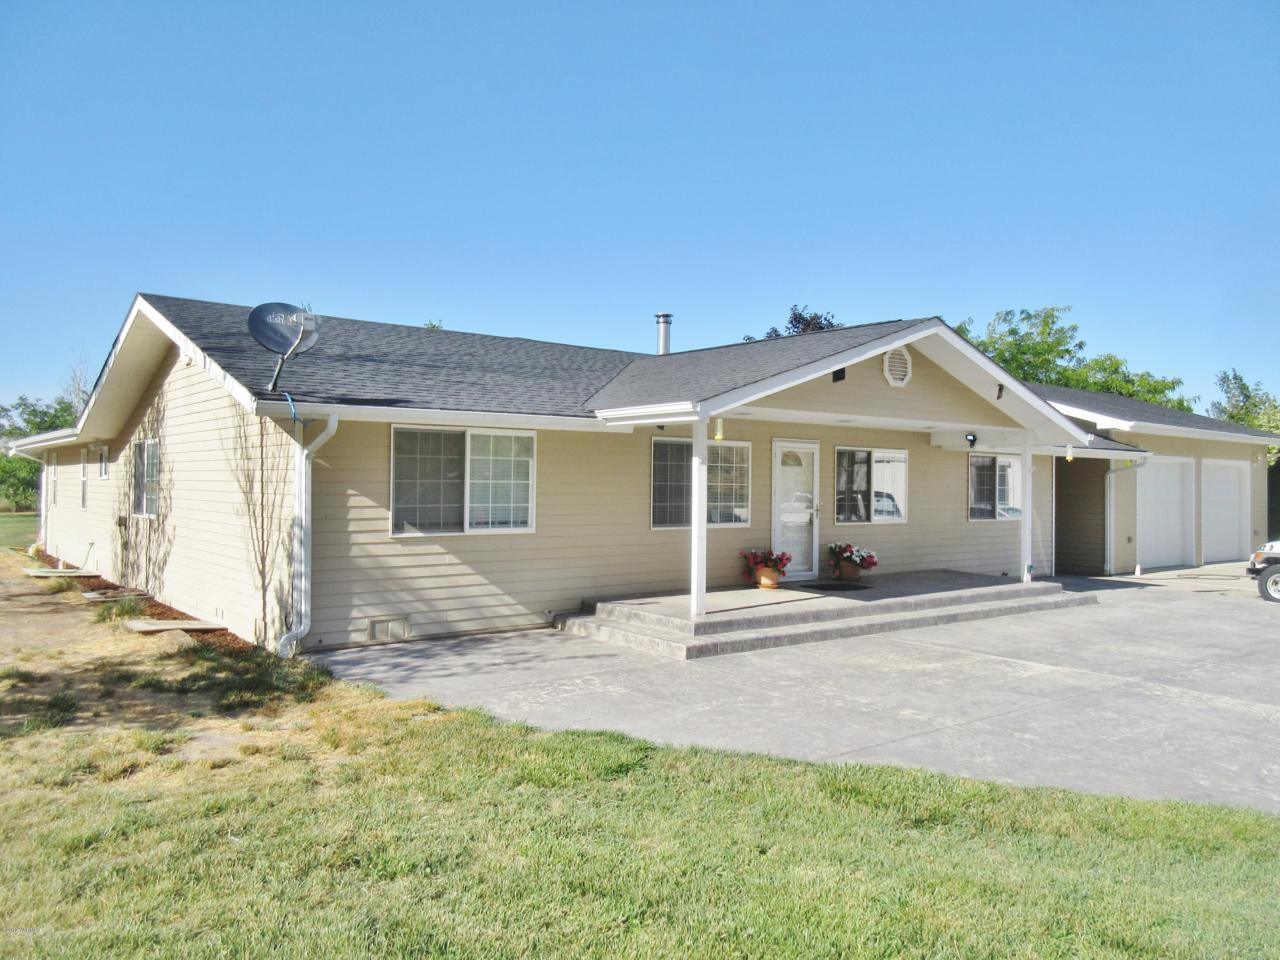 2381 Wenas Rd - Photo 1